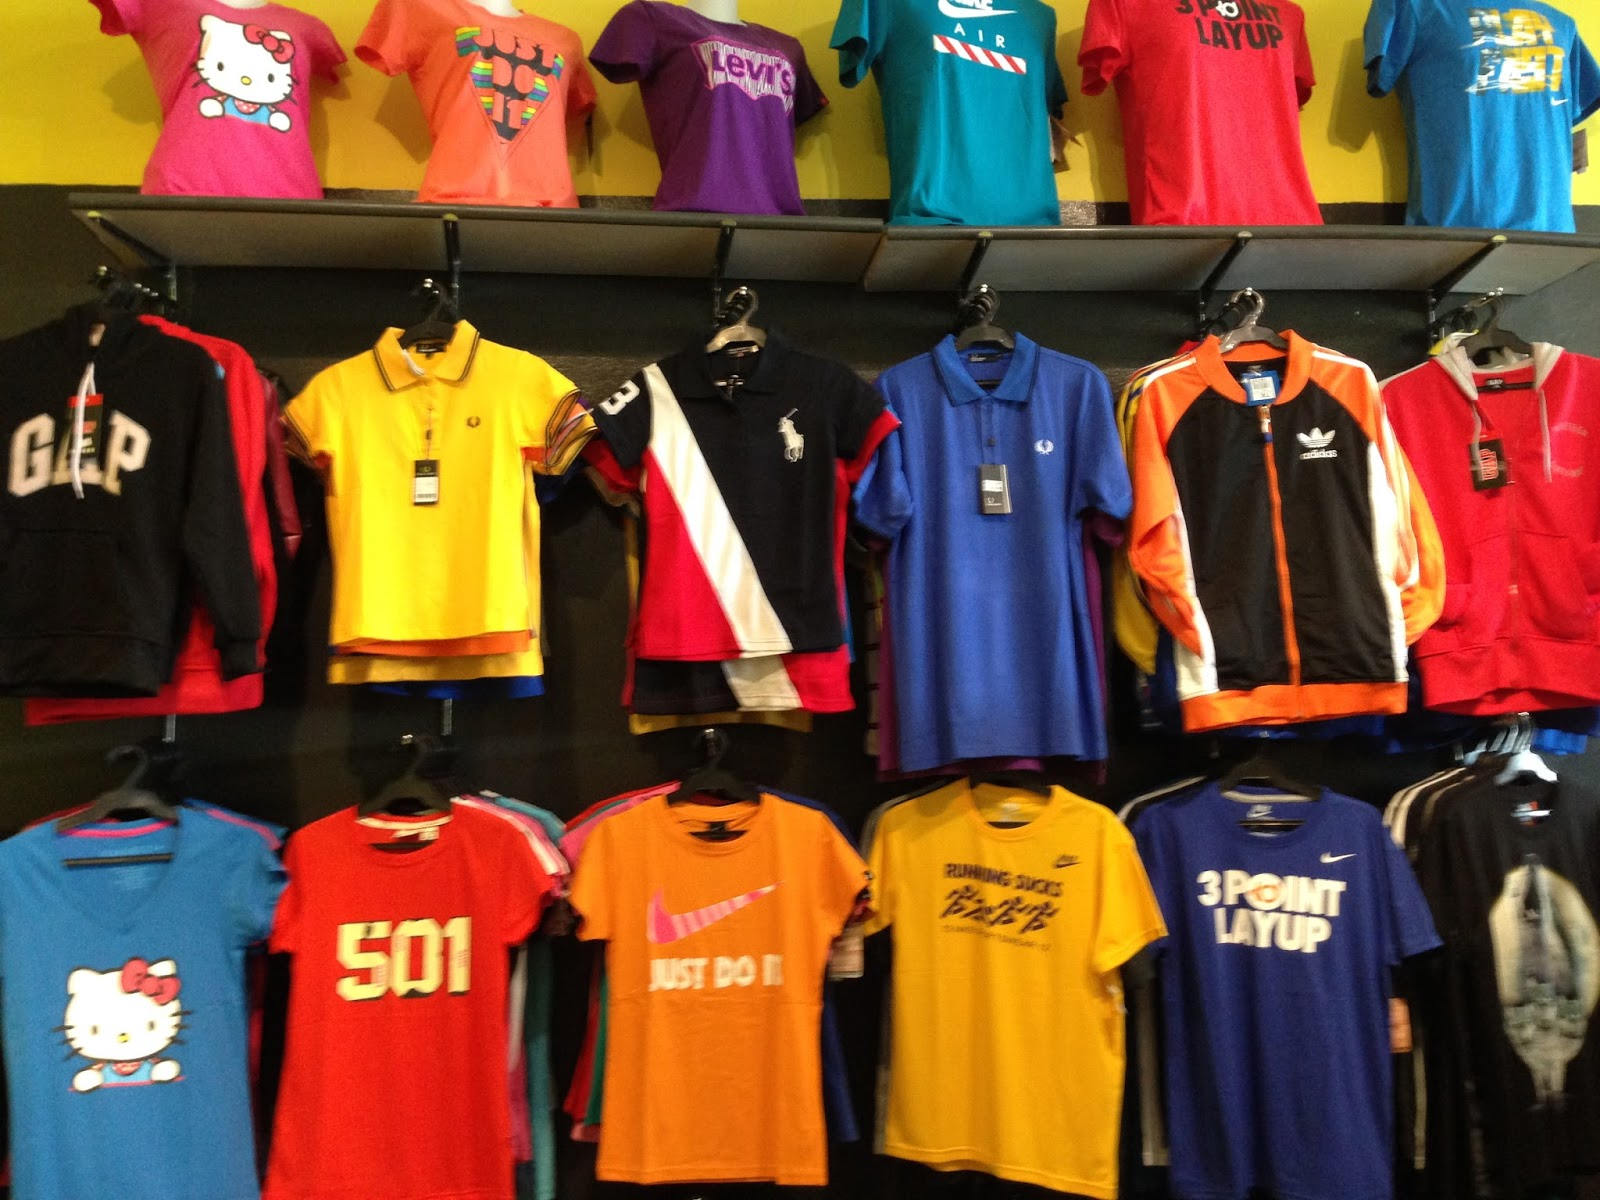 SUPPLIER AND WHOLESALER OF FAB AND TRENDY CLOTHES IN MANILA - www